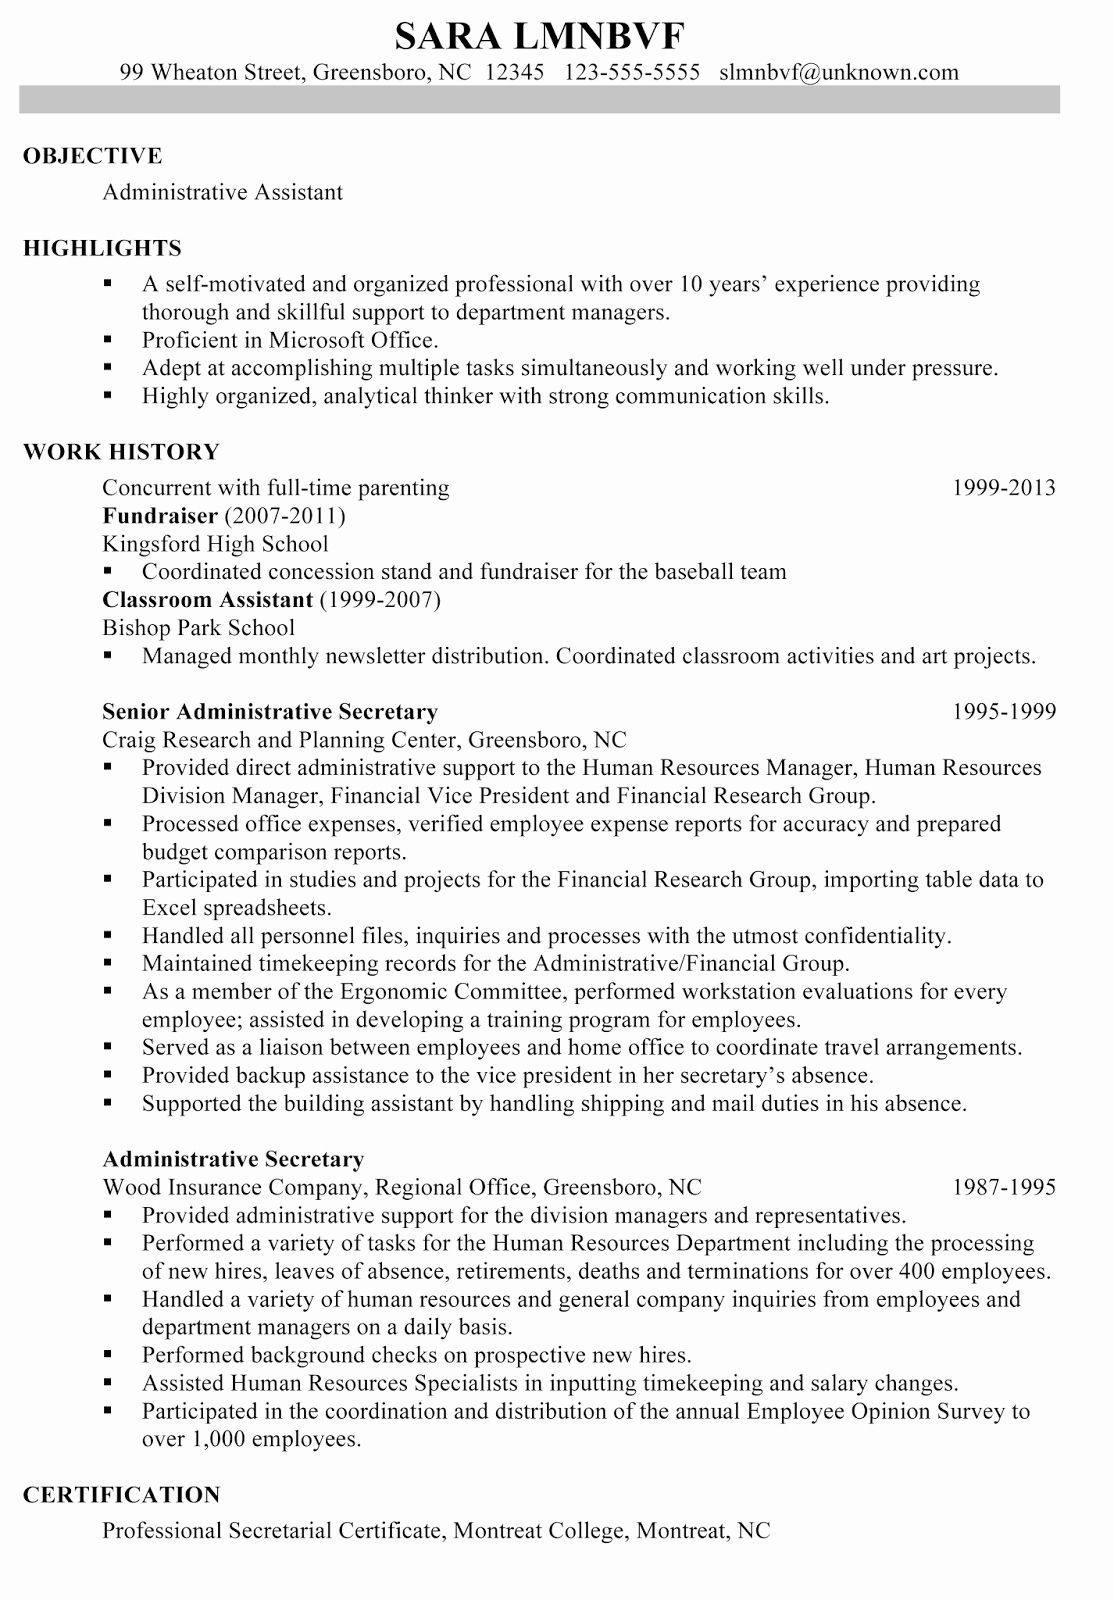 20 Executive assistant Resume Summary in 2020 (With images